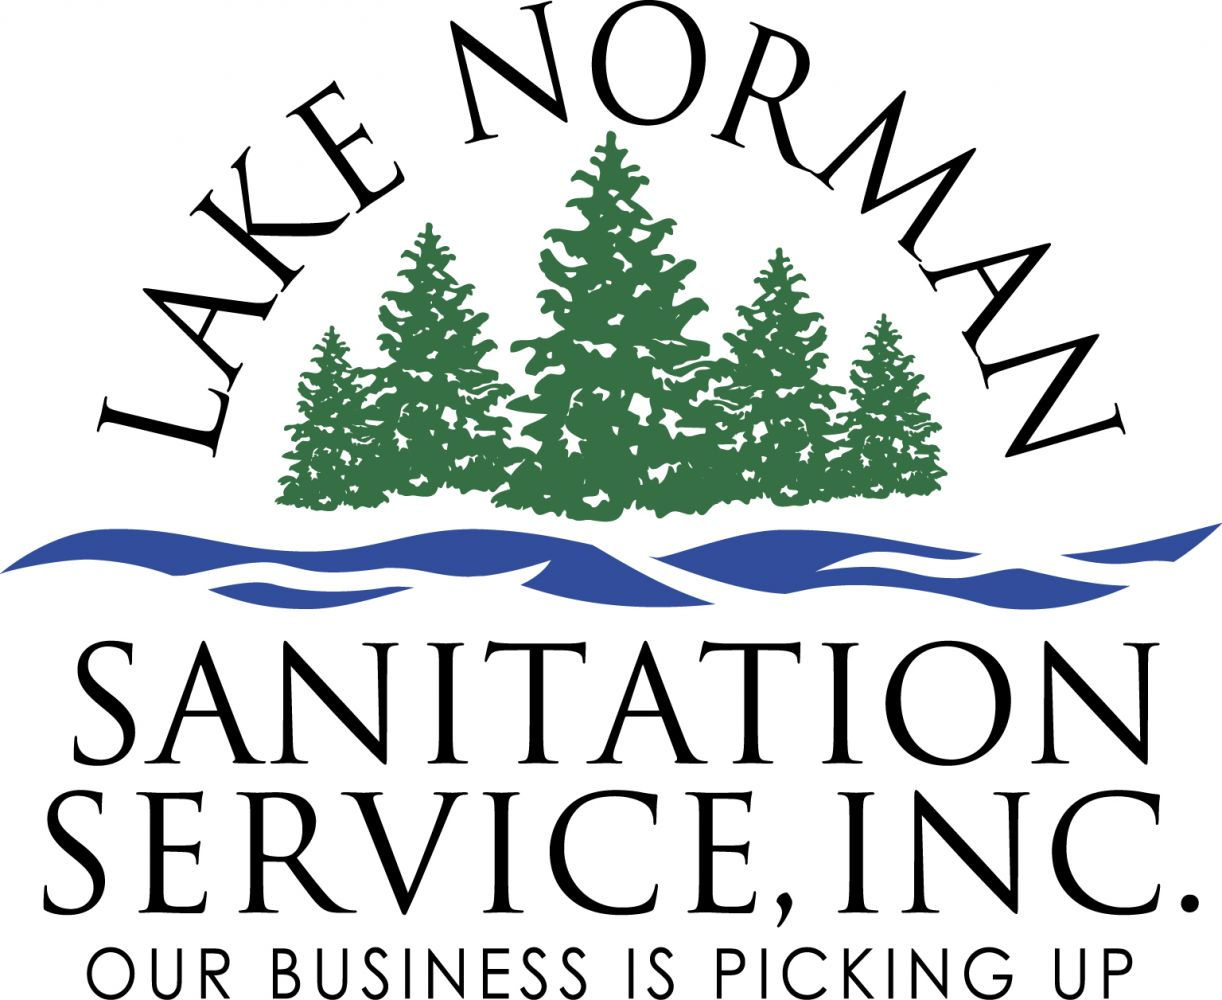 Lake Norman Sanitation Services Inc Environmentally friendly waste reduction